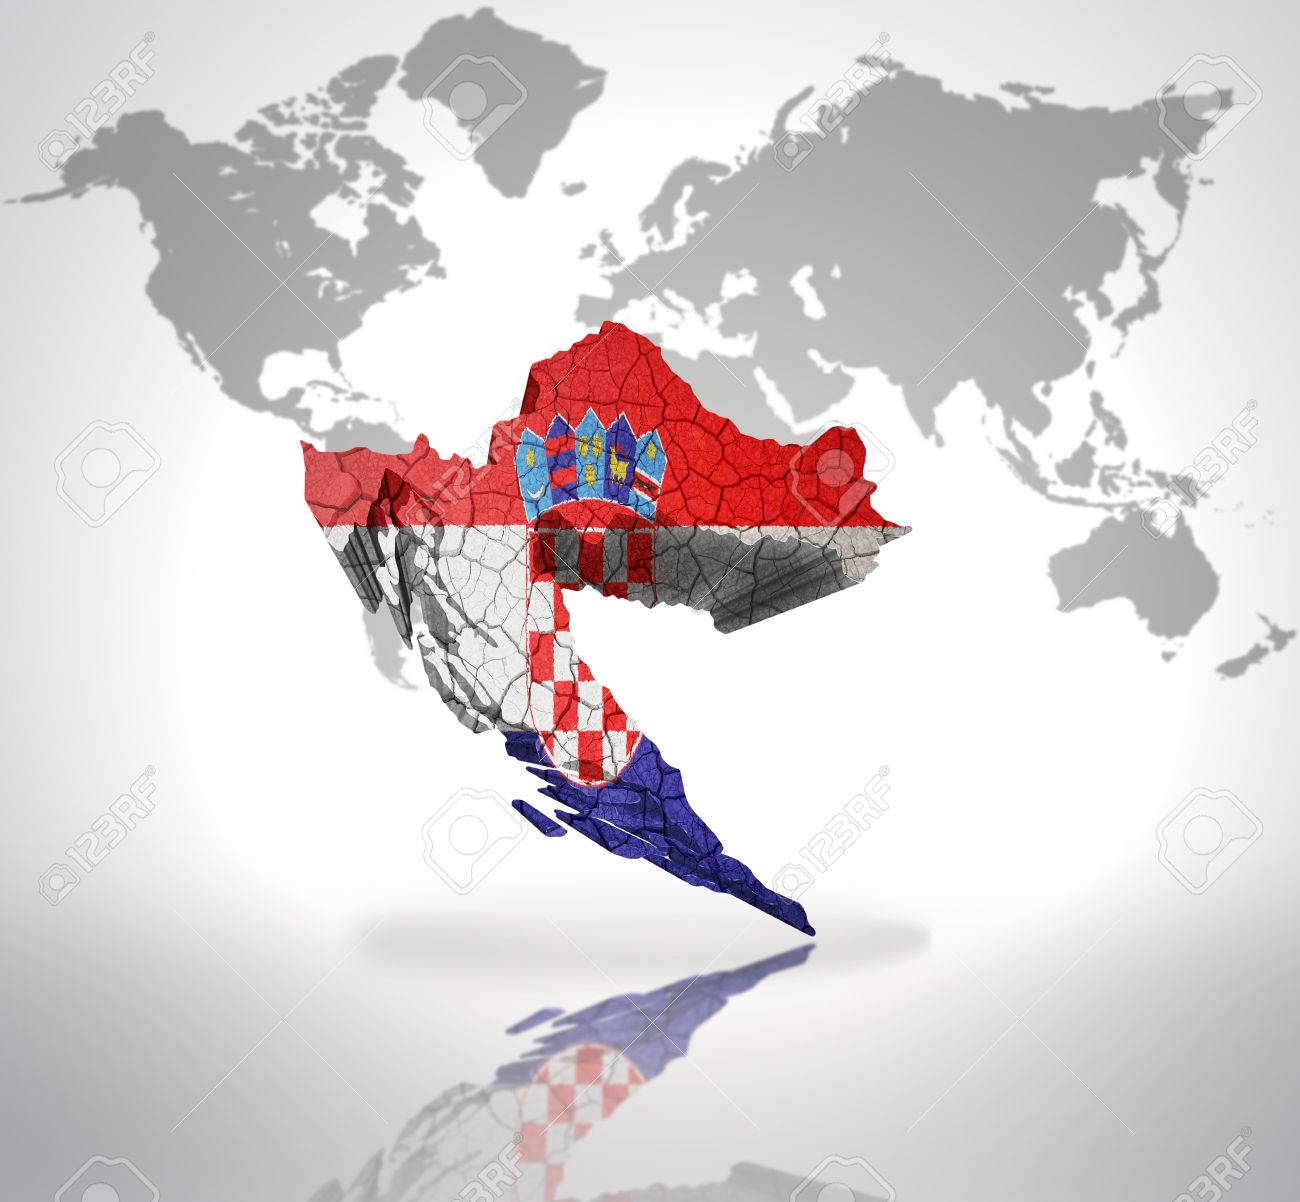 Map of croatia with croatian flag on a world map background stock map of croatia with croatian flag on a world map background stock photo 32714944 gumiabroncs Images